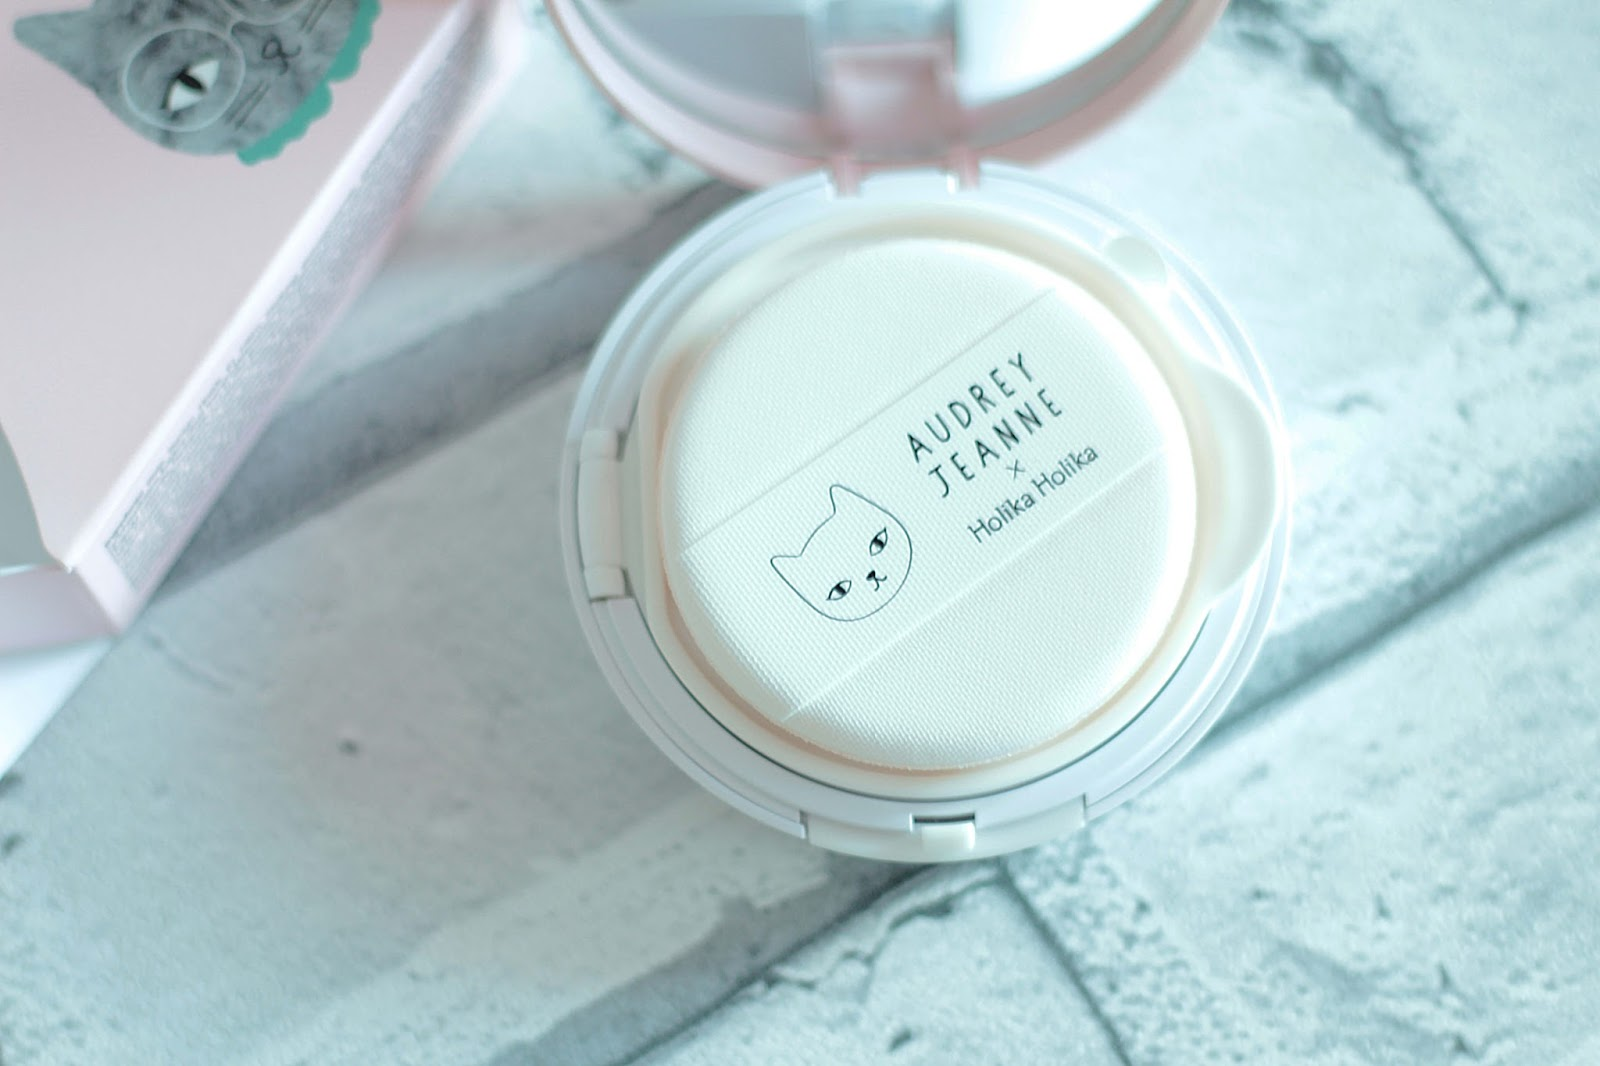 holika holika face2change dodocat glow cushion bb review open compact